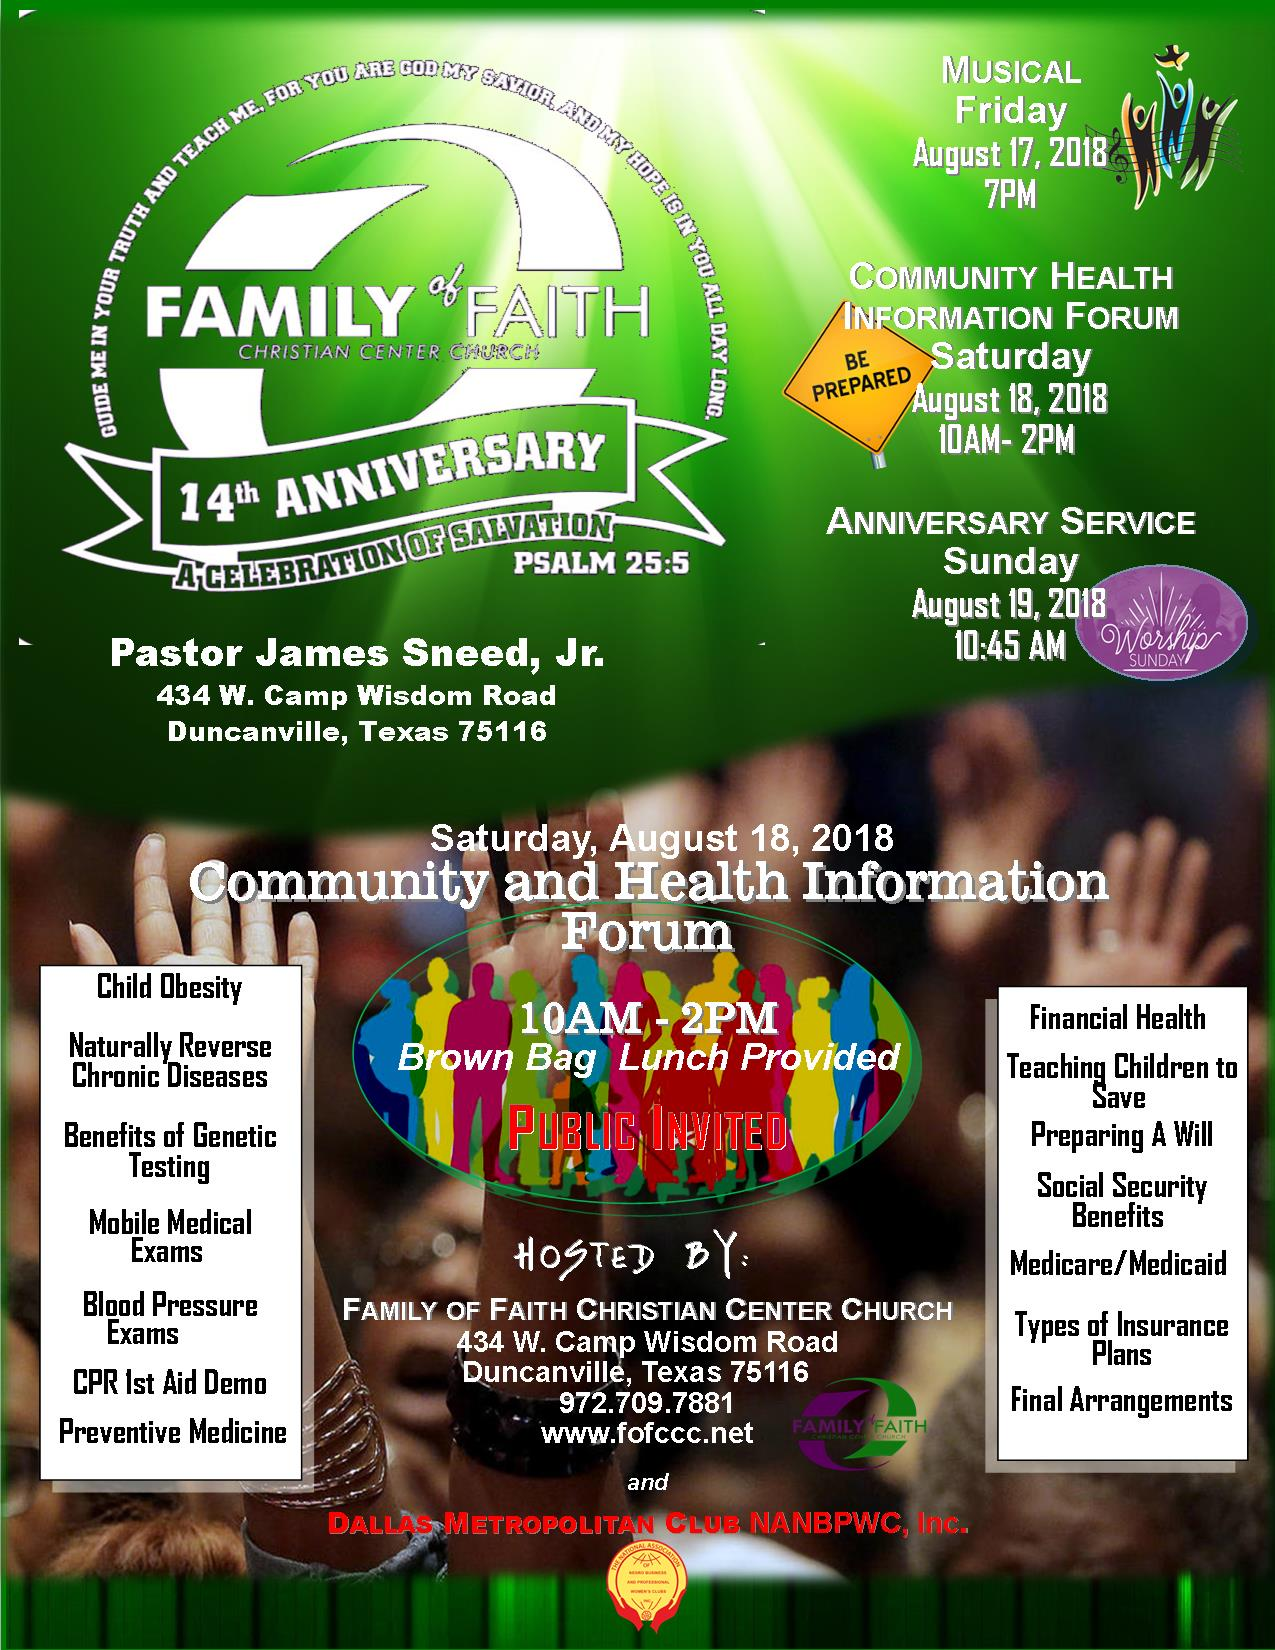 Family of Faith Christian Center Church's 14th Anniversary Celebration: 8/17-8/19